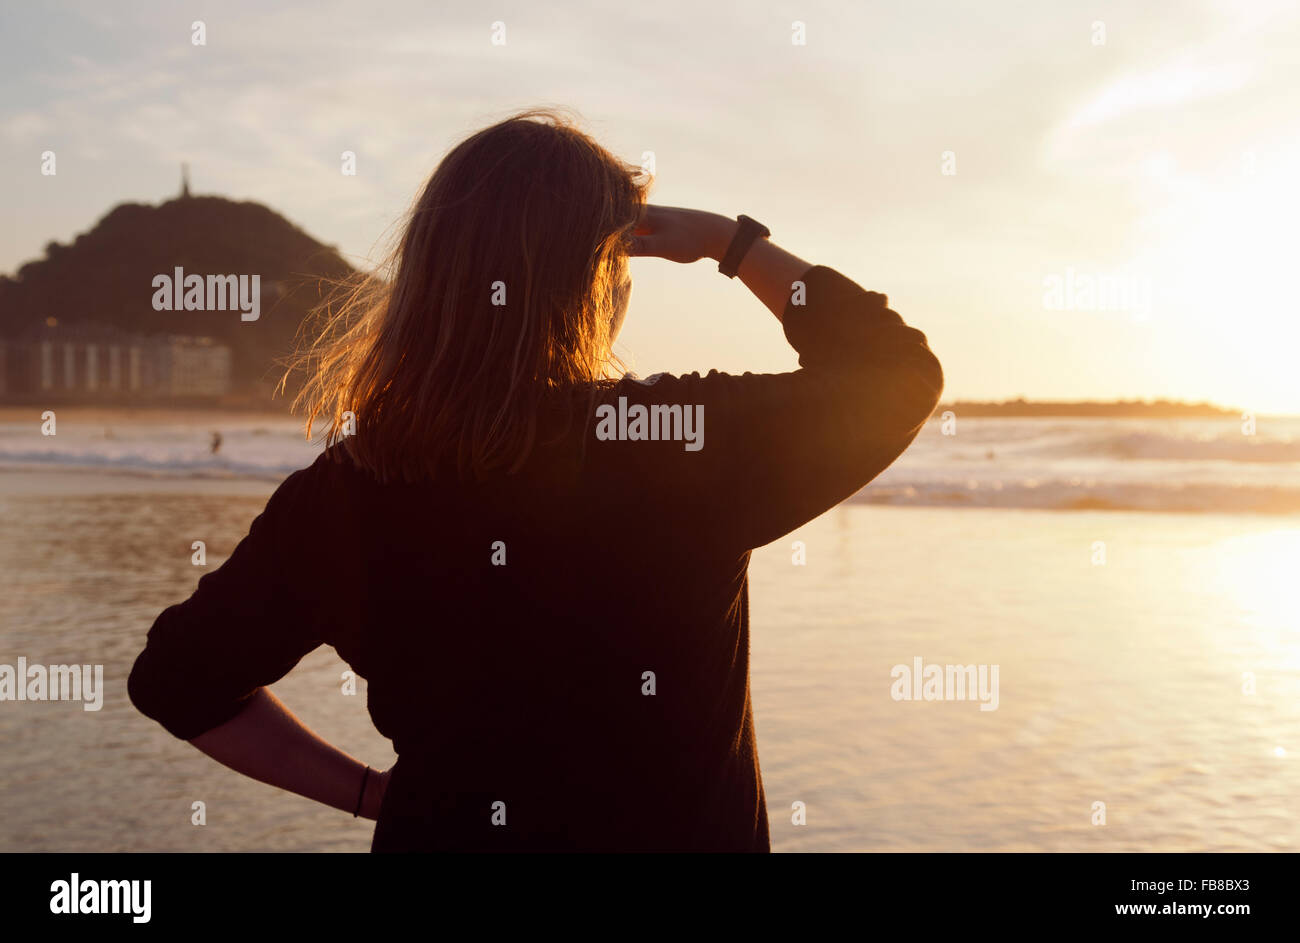 Spain, The Basque Country, Gipuzkoa, San Sebastian, Woman standing on beach and looking at Bay of Biscay at sunset - Stock Image